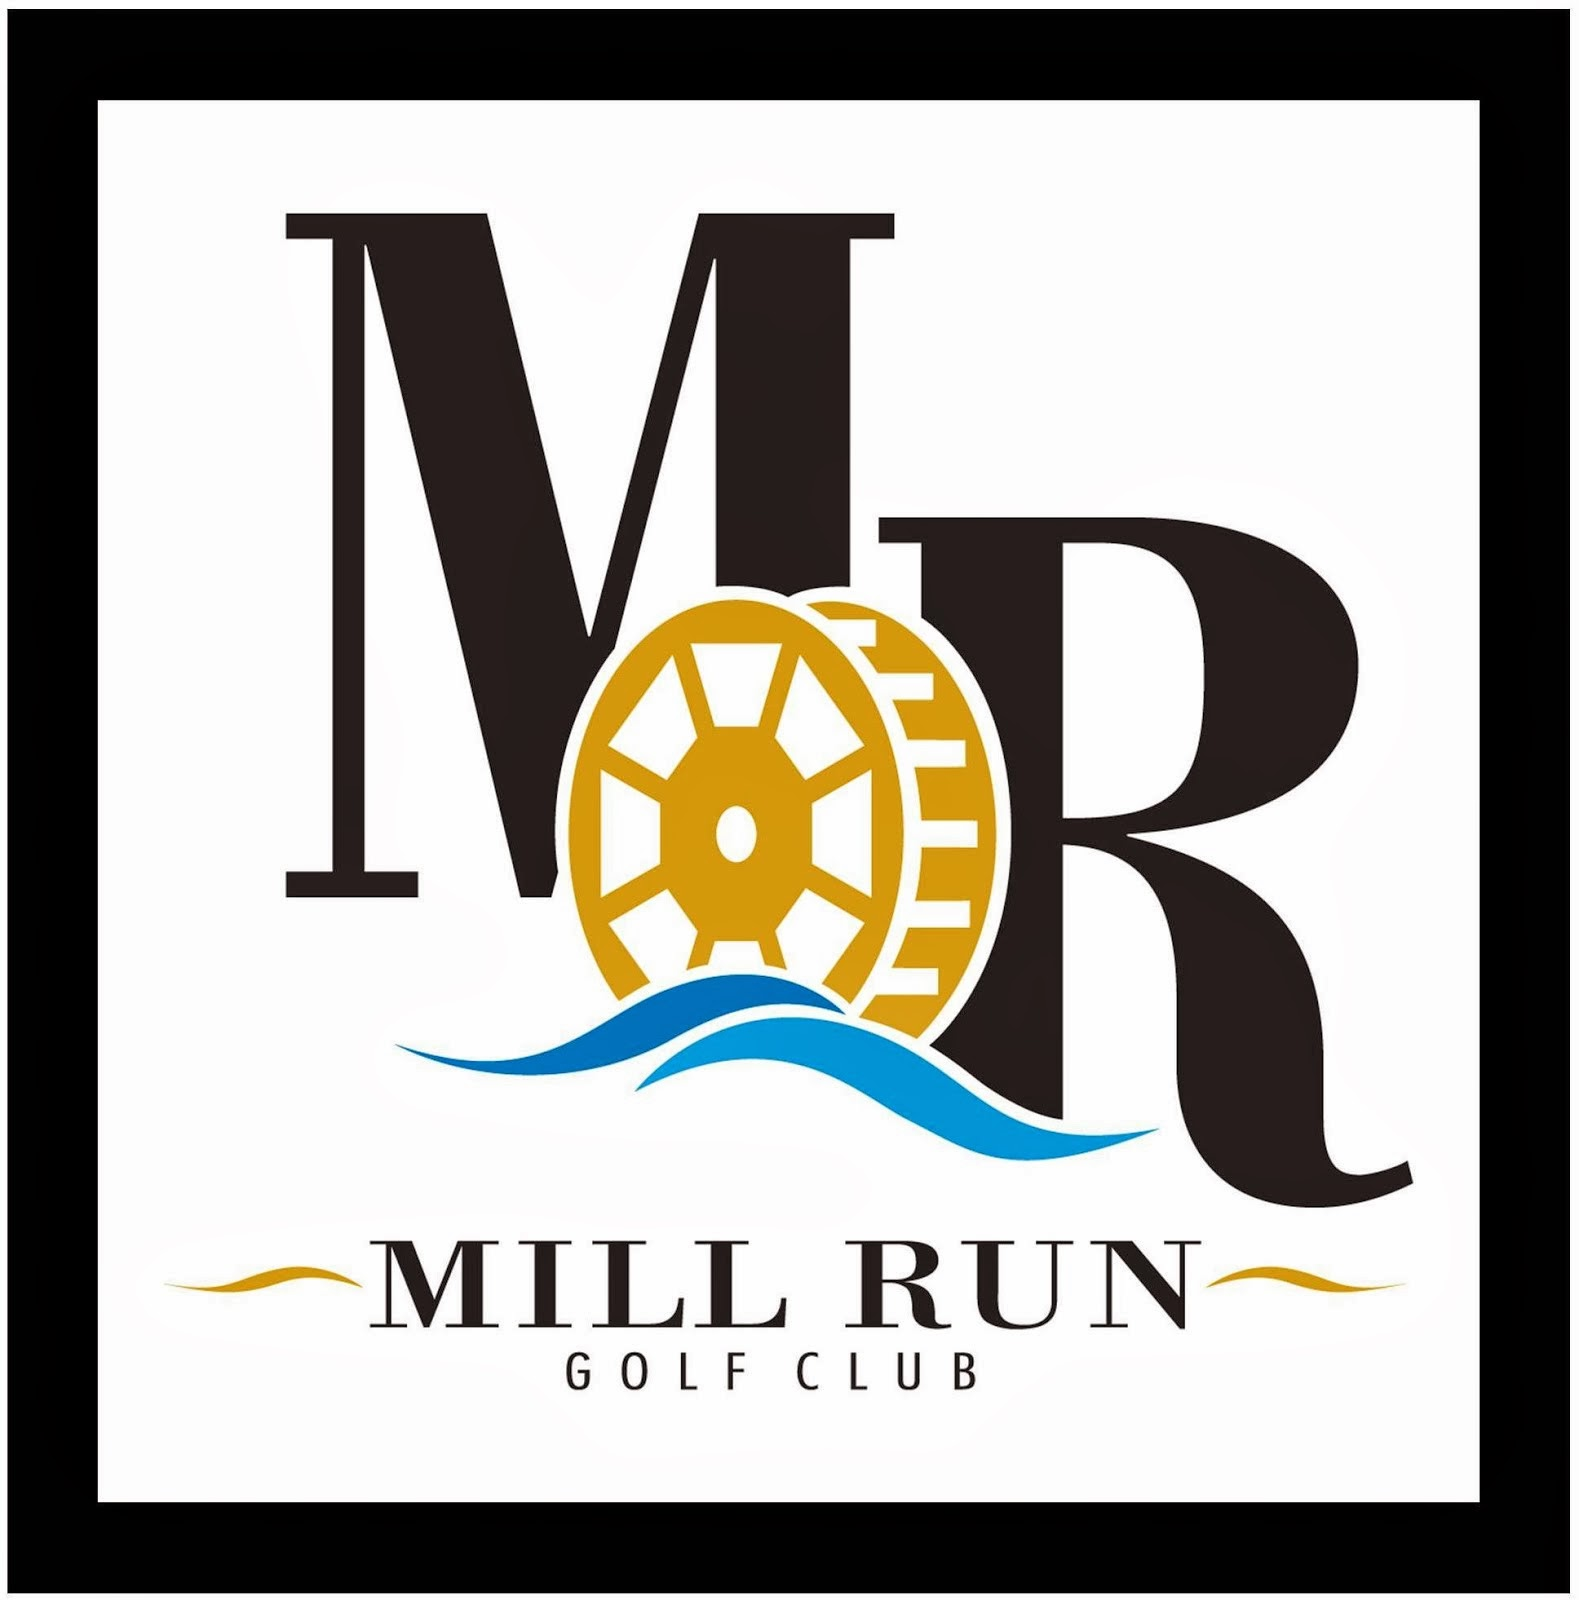 Mill Run Golf Club